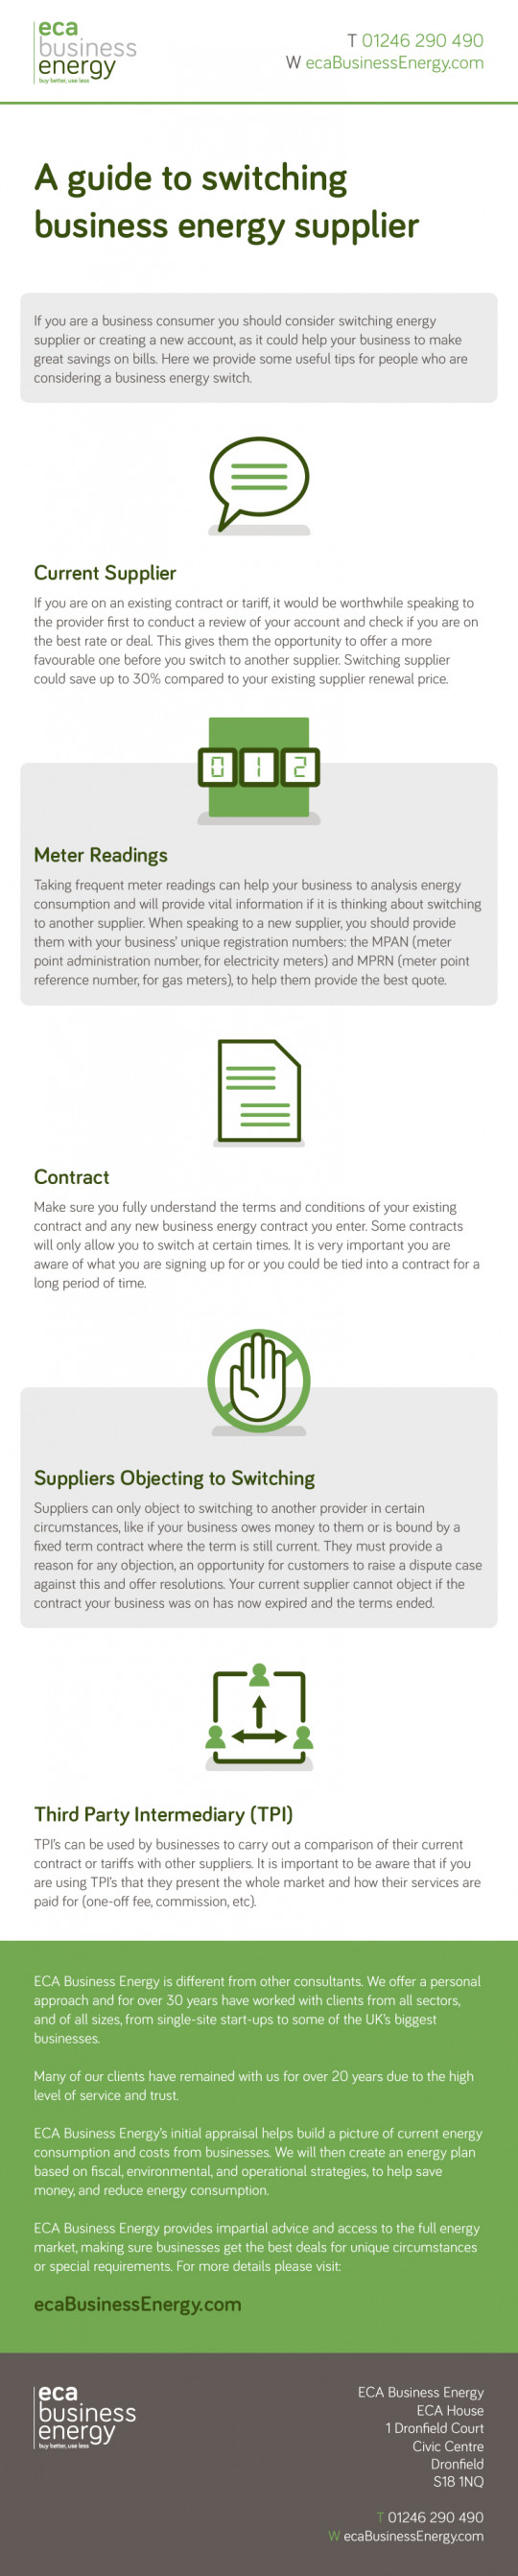 A Guide to Switching Business Energy Supplier